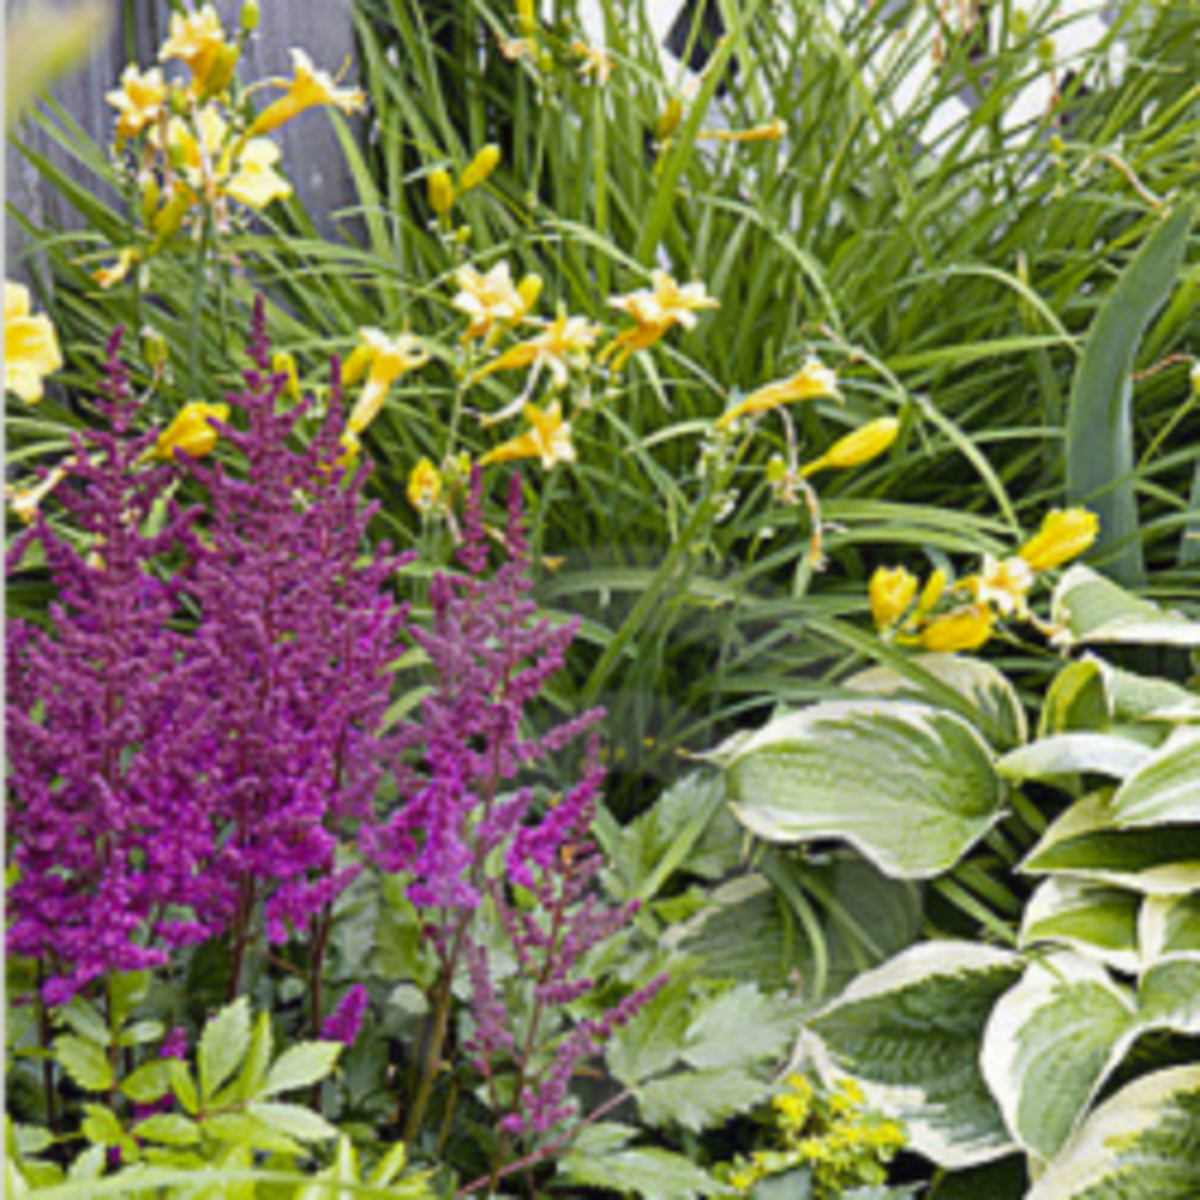 10 awesome easy care perennial plants hubpages for Low maintenance perennials for shade